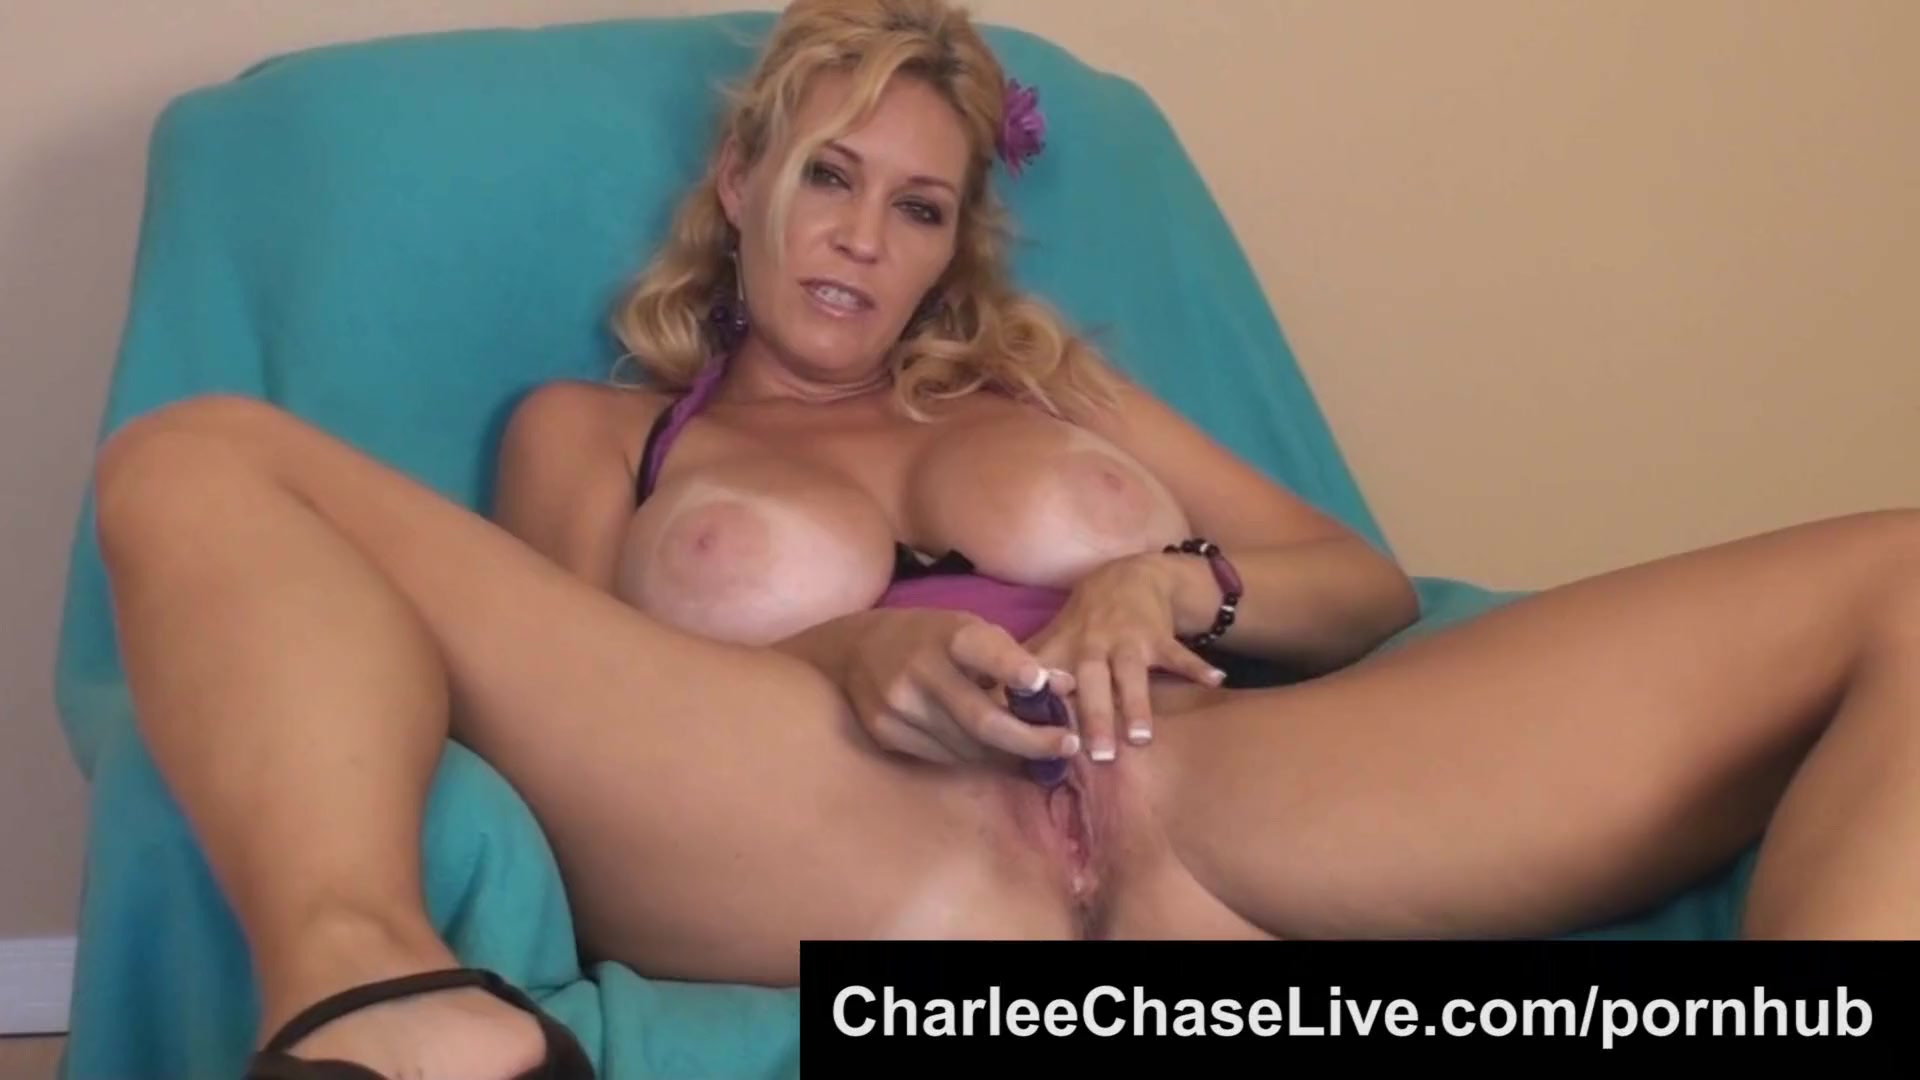 image Tampa milf charlee chase sucks cock with sexy redhead